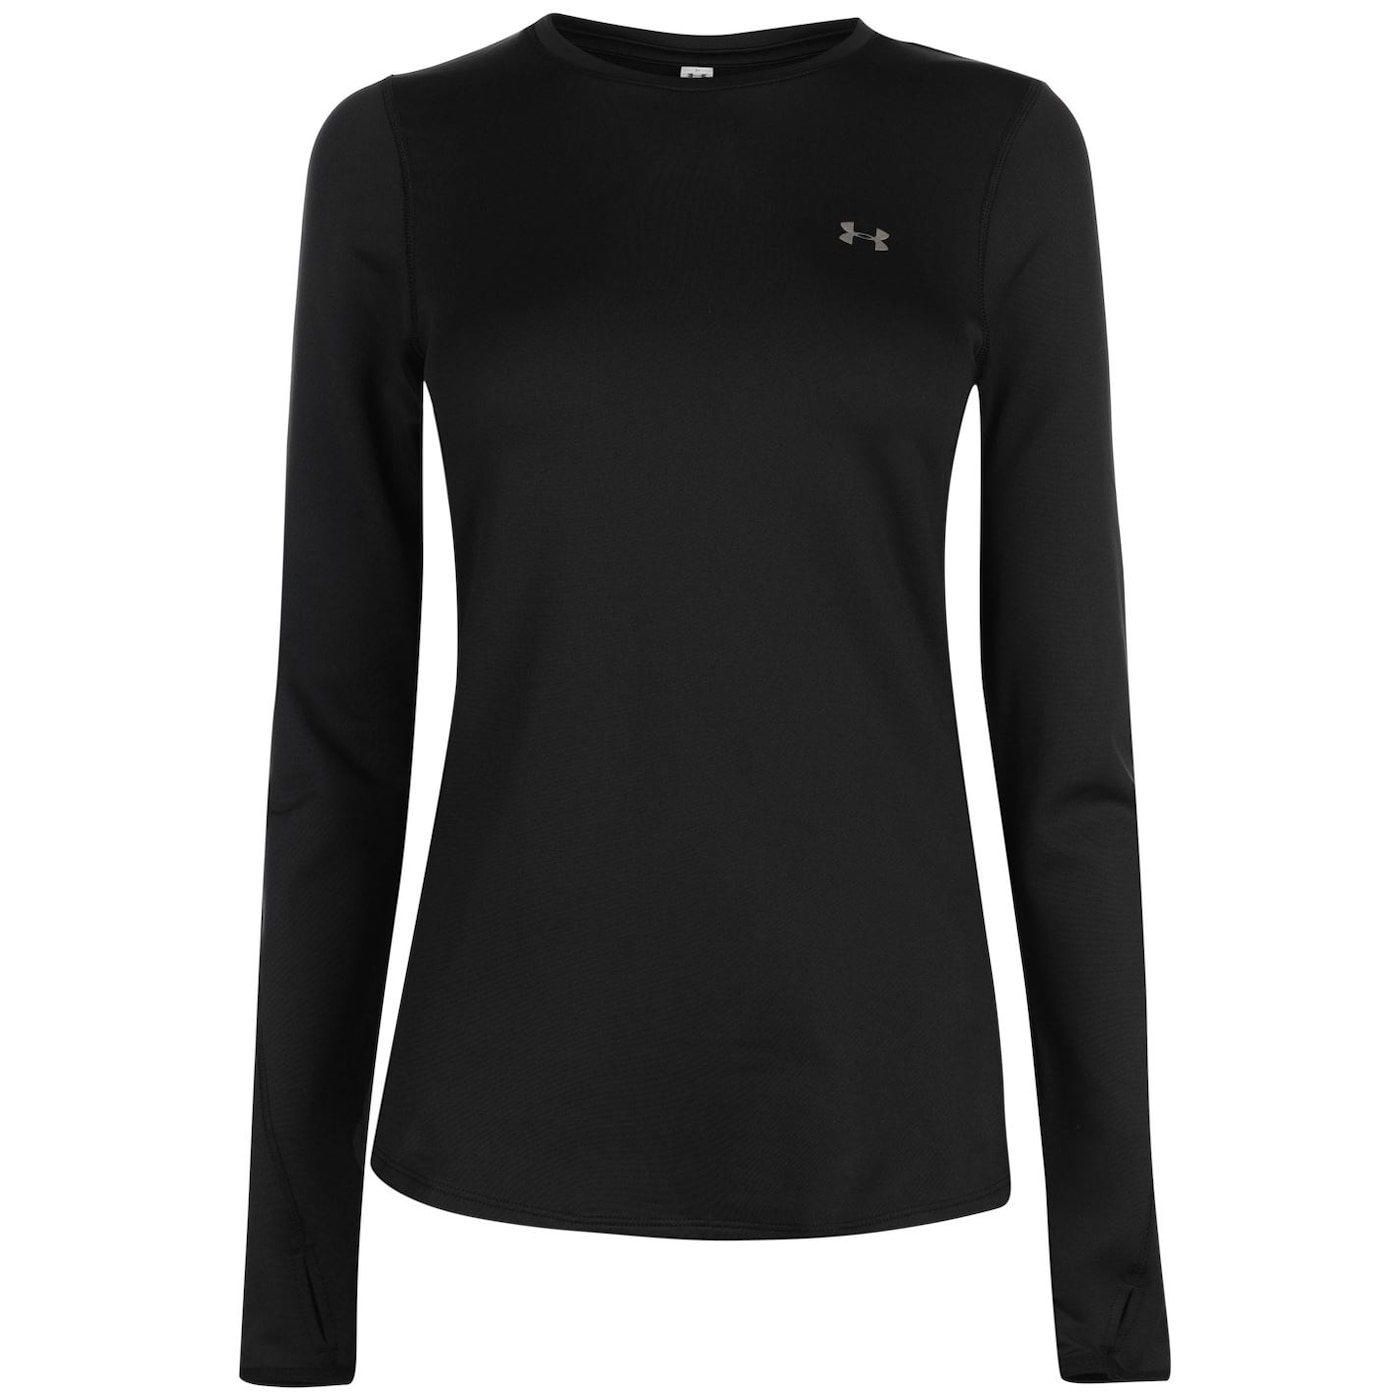 Under Armour ColdGear Armour Long Sleeve Base Layer Ladies